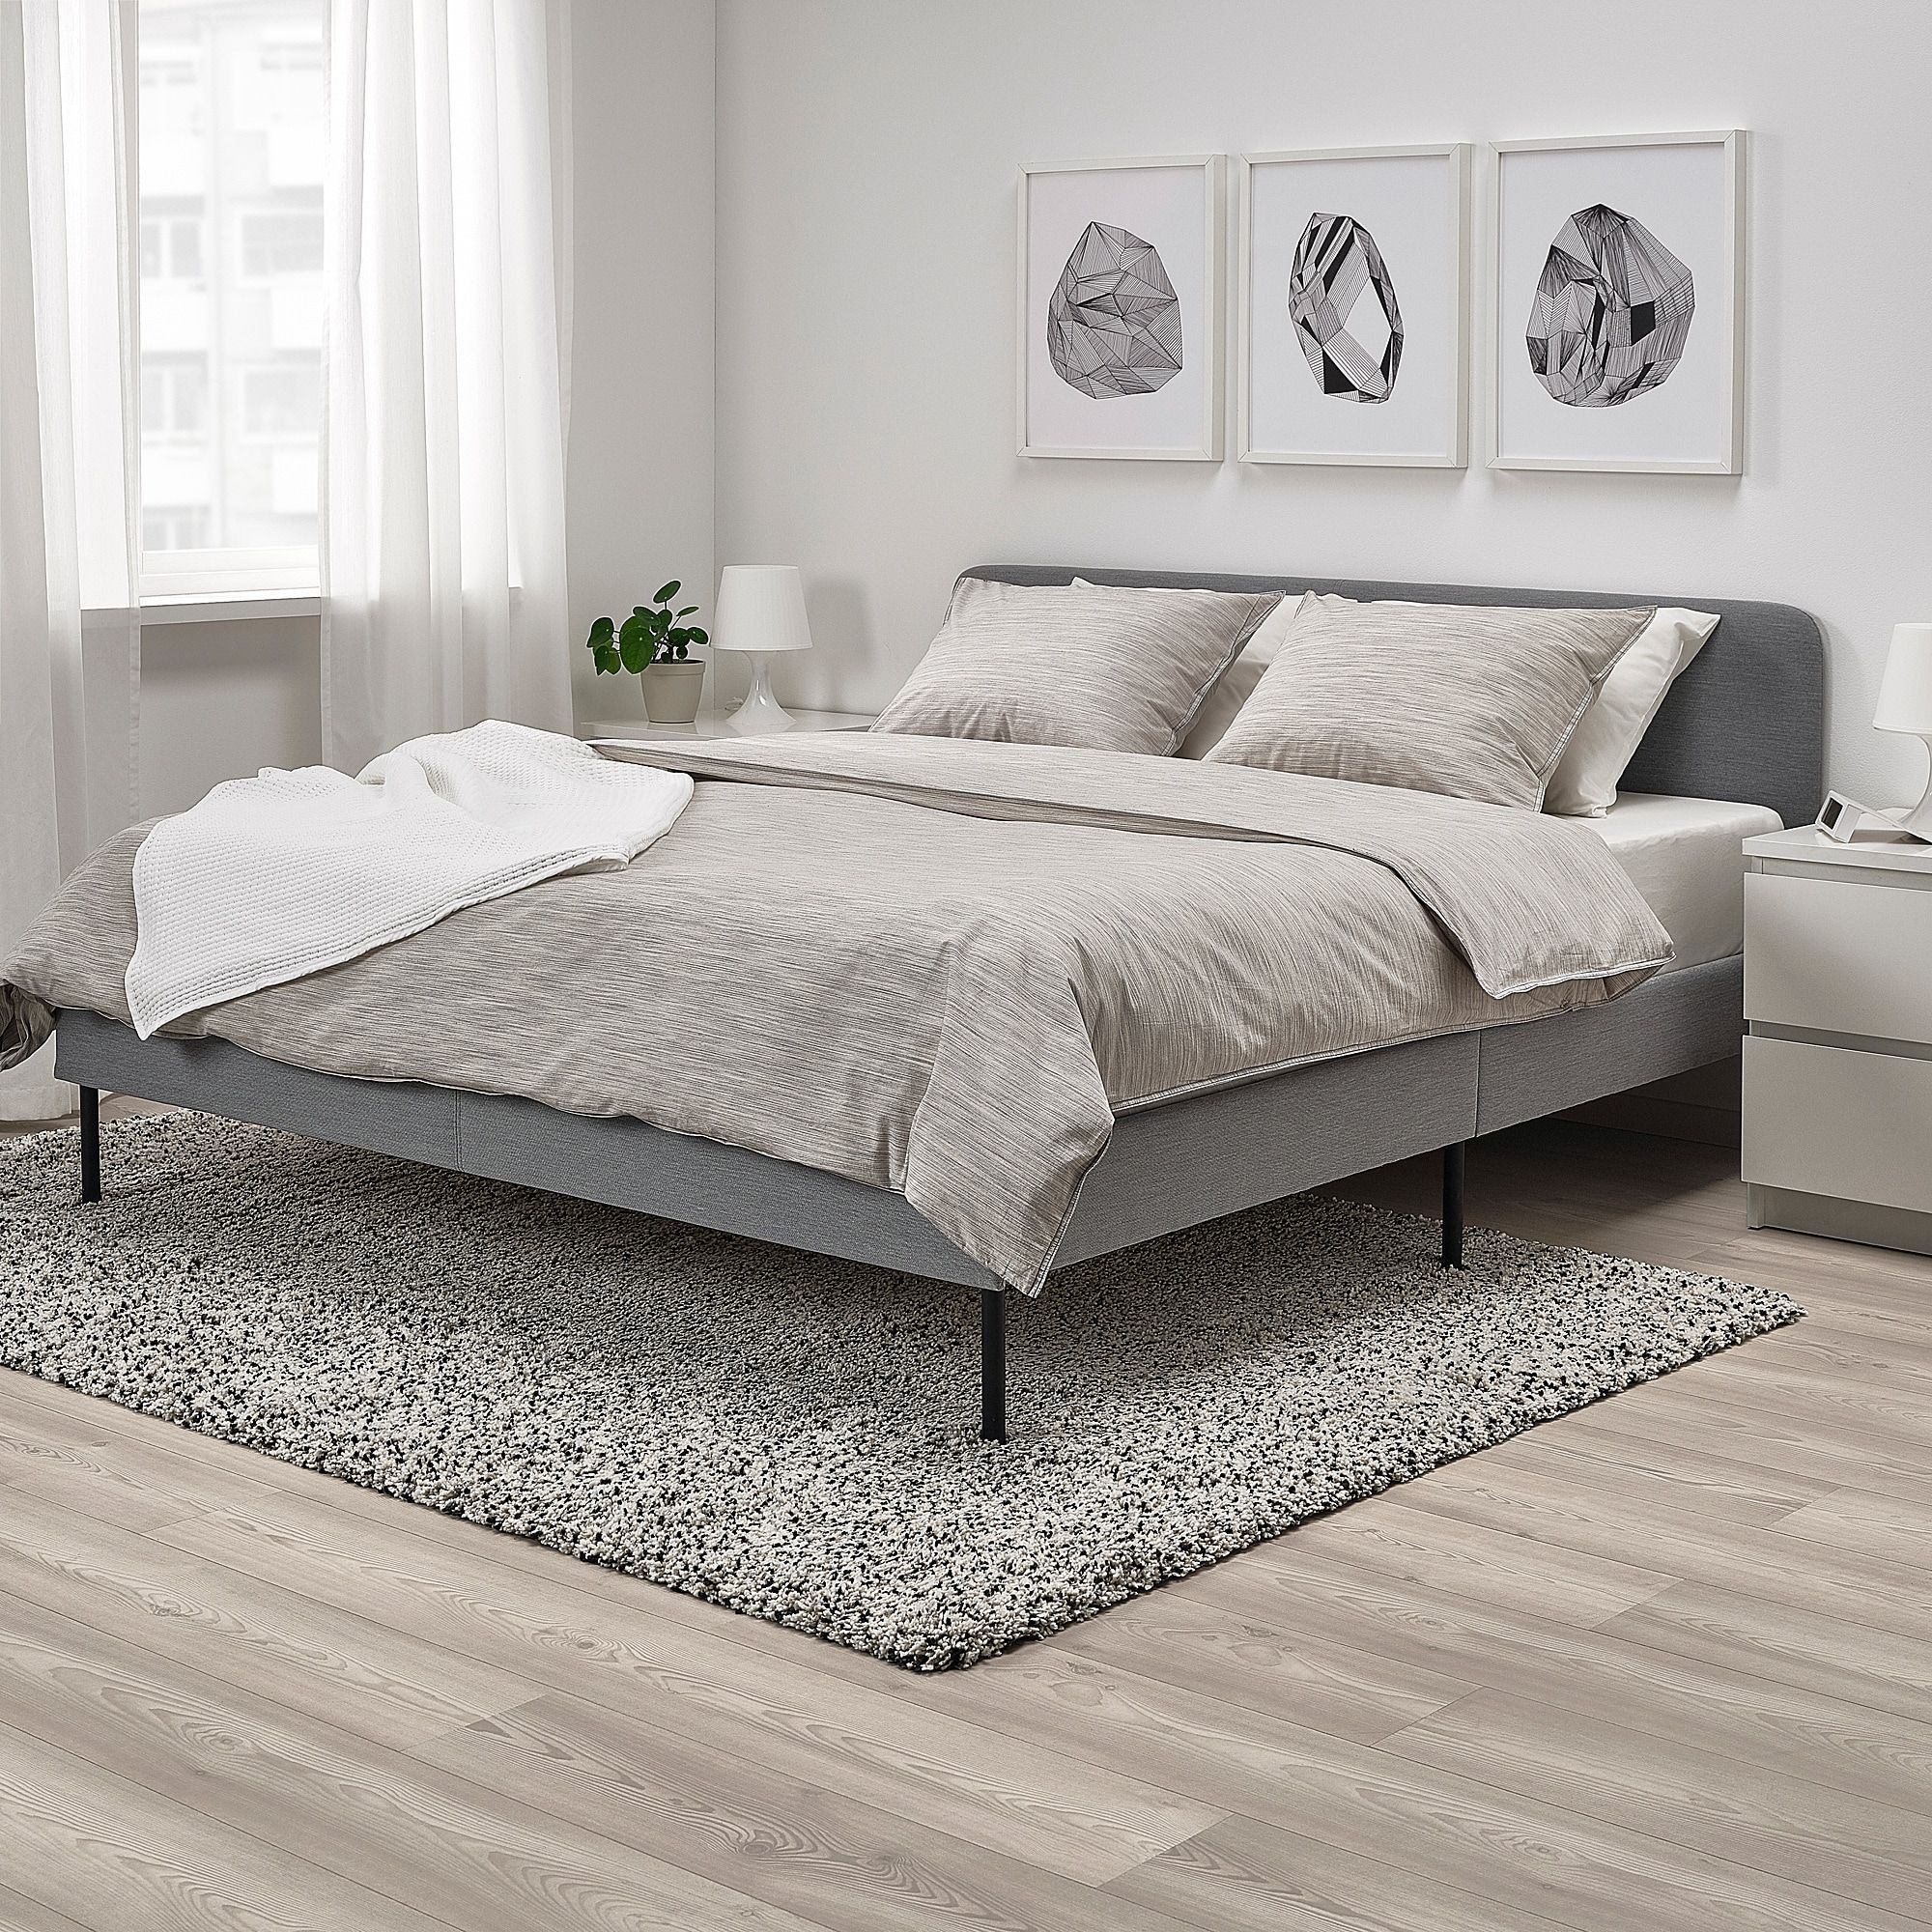 Slattum Upholstered Bed Frame Knisa Light Gray Queen In 2020 Grey Upholstered Bed Upholstered Bed Frame